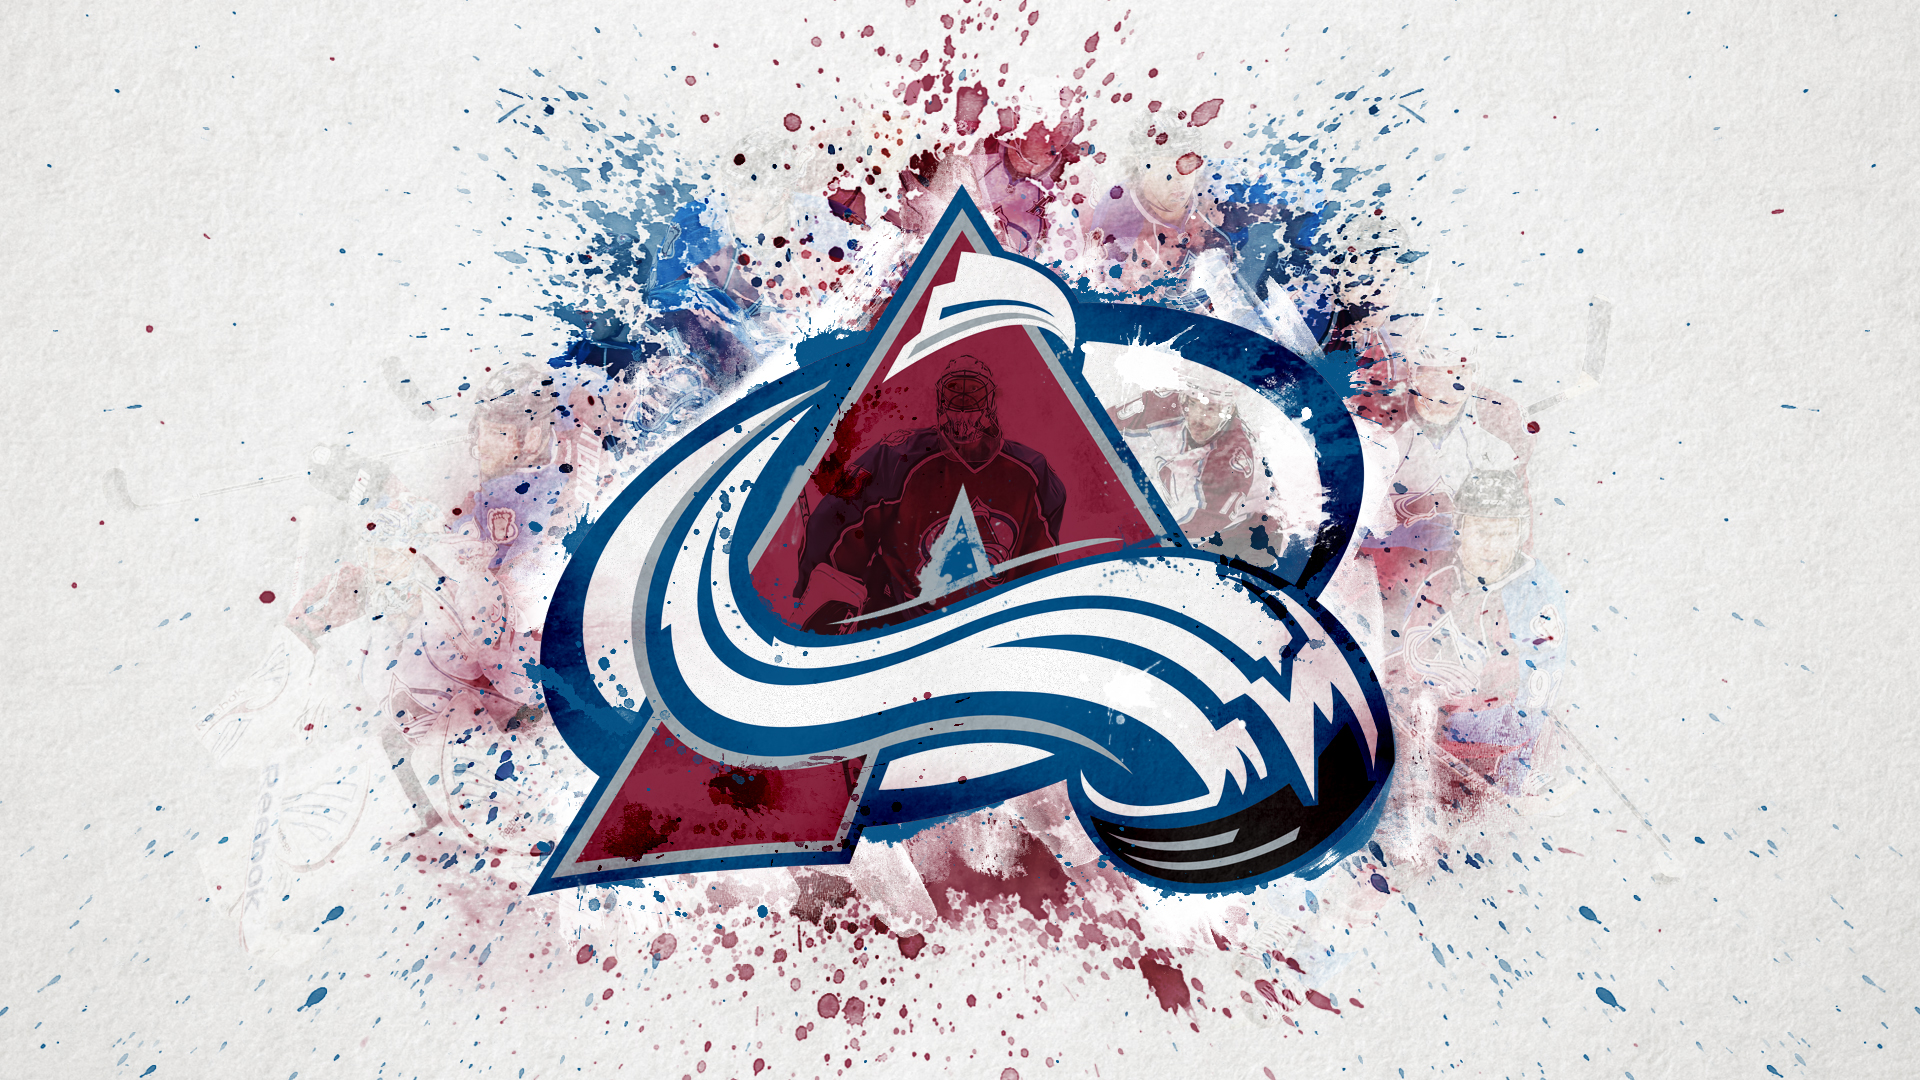 Colorado avalanche team wallpaper